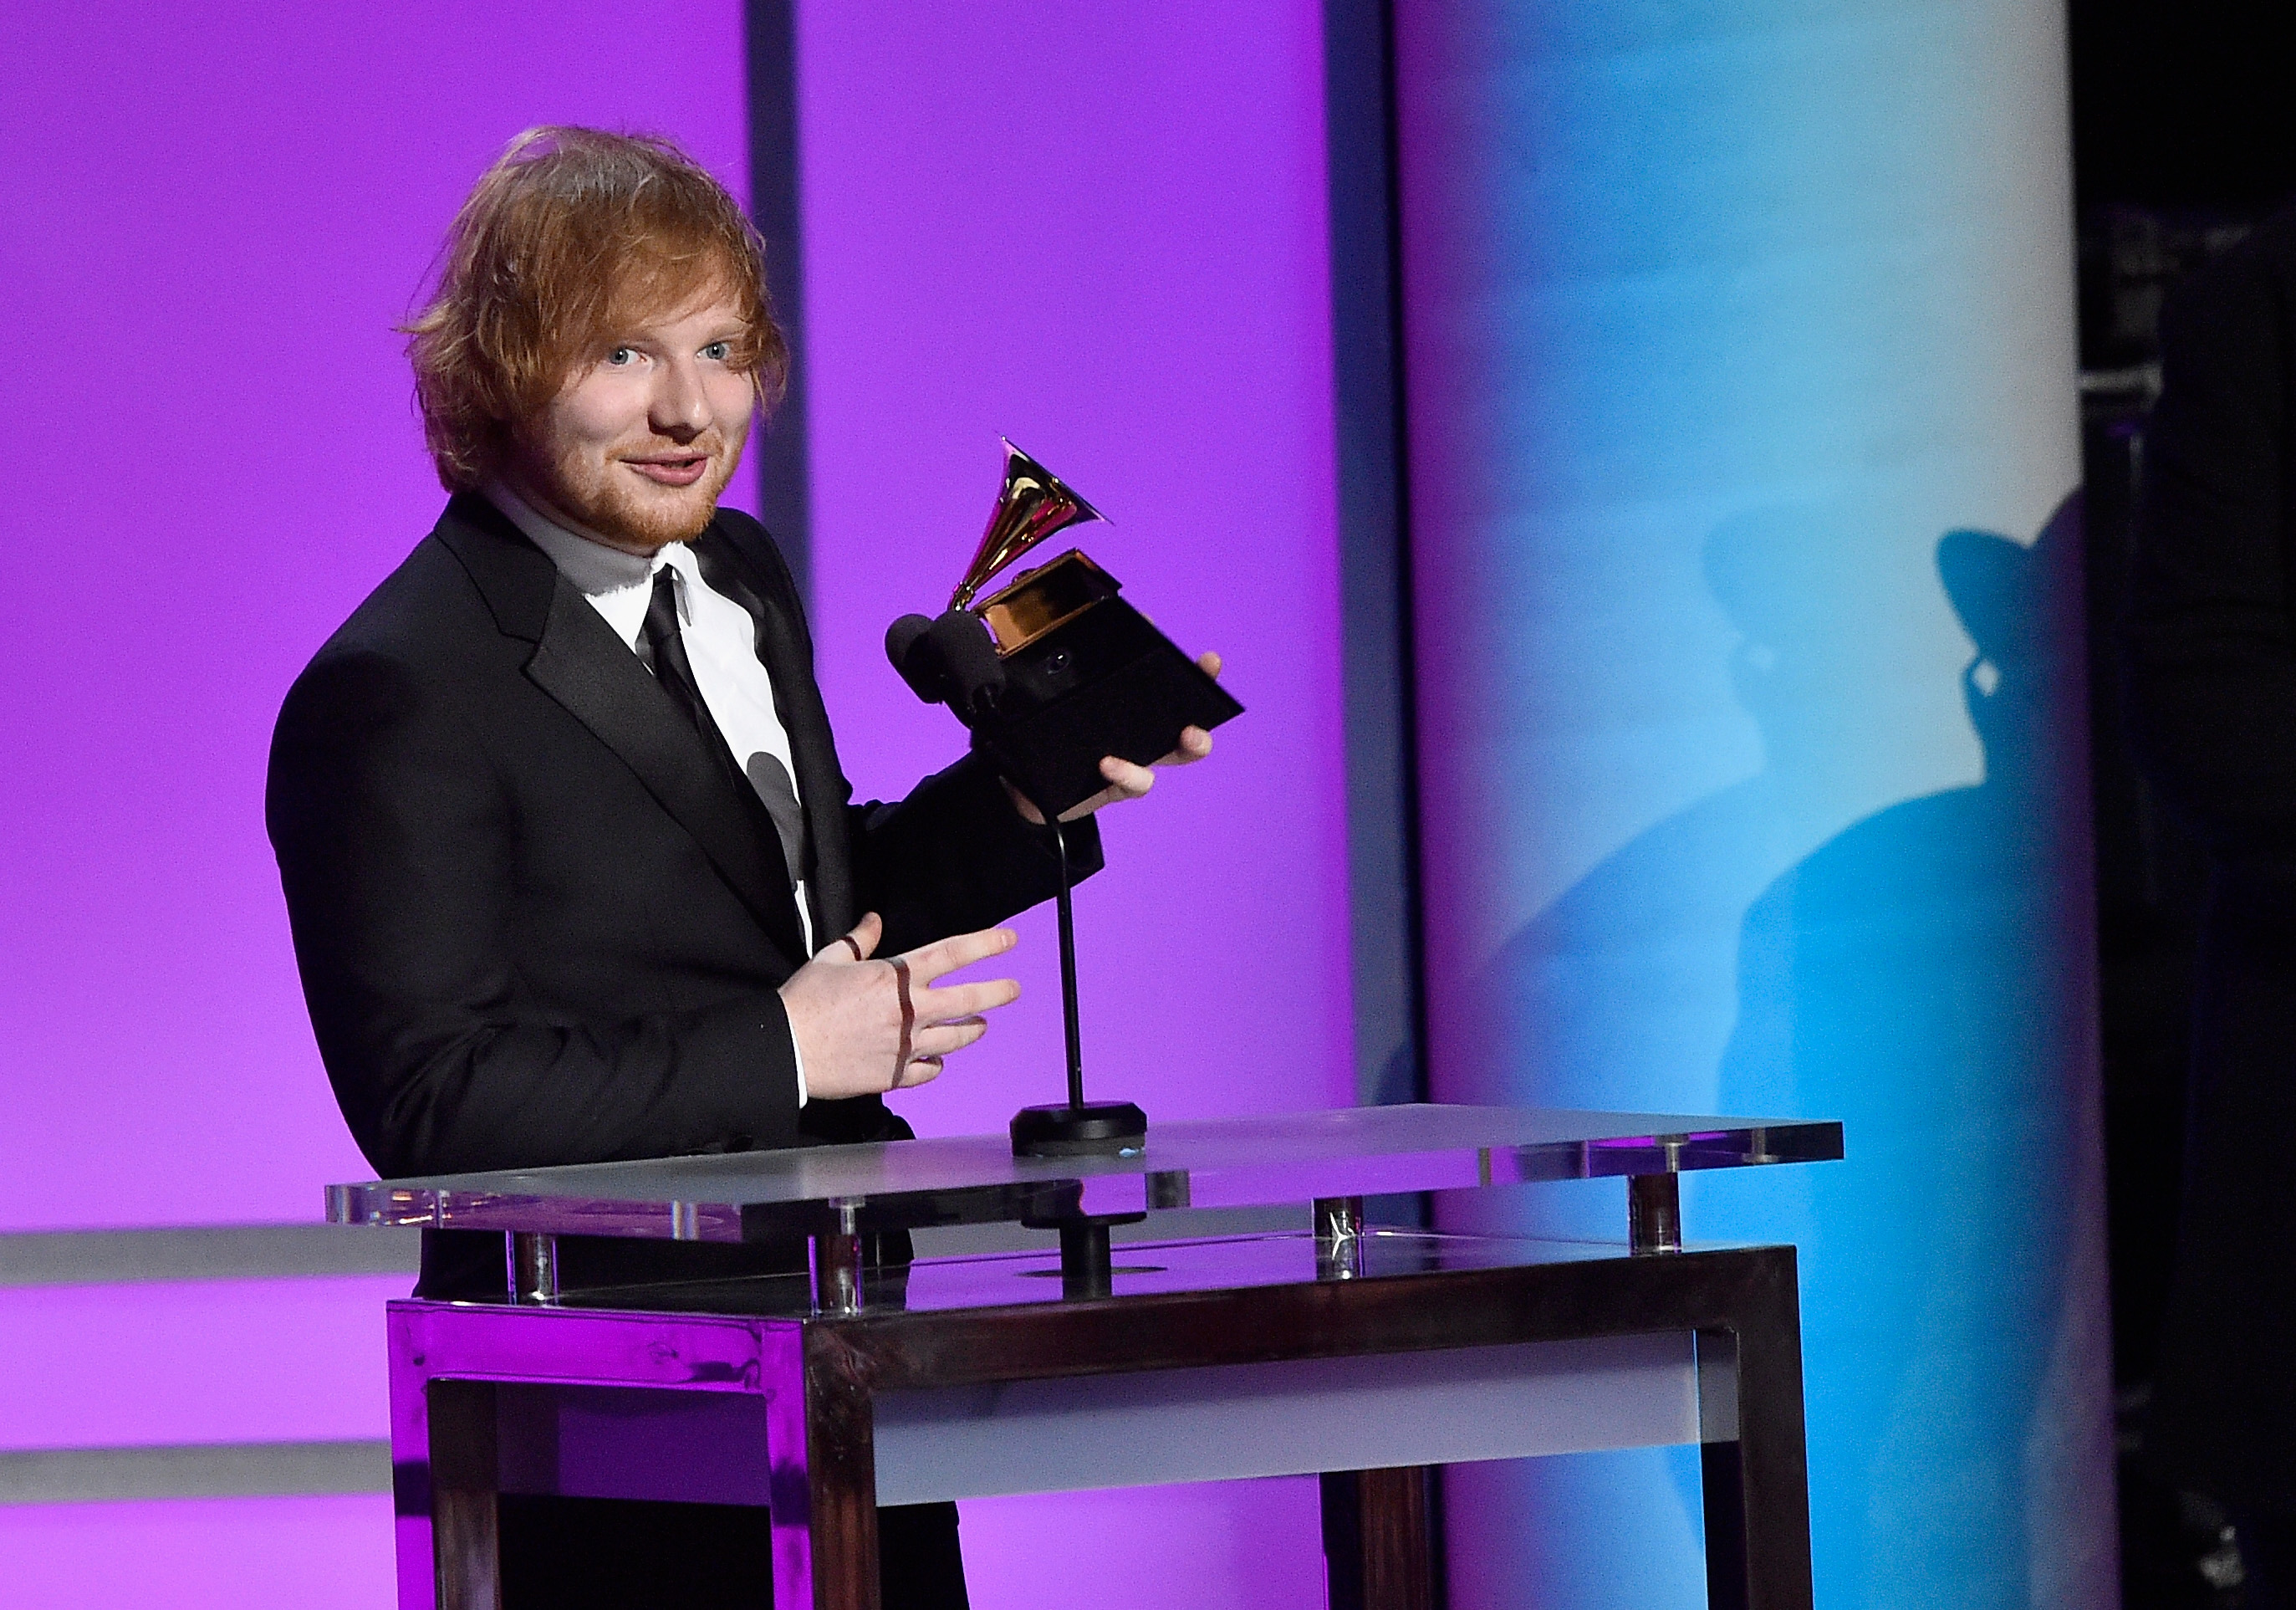 Singer-songwriter Ed Sheeran accepts the Grammy Award for Best Pop Solo Performance, for  Thinking Out Loud,  onstage during the GRAMMY Pre-Telecast at The 58th GRAMMY Awards at Microsoft Theater on February 15, 2016 in Los Angeles, California.